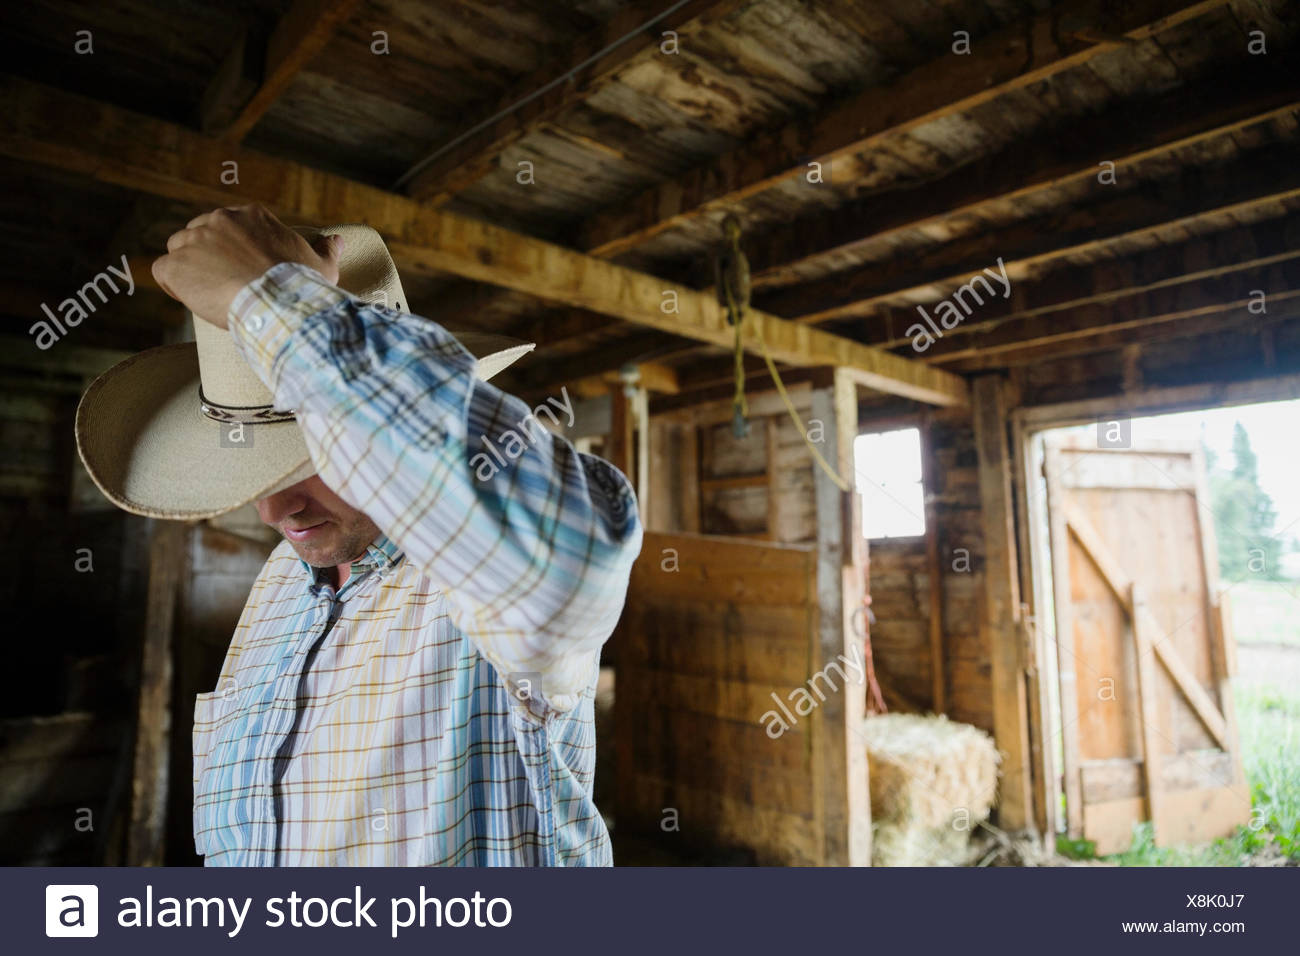 Rancher with cowboy hat in barn - Stock Image